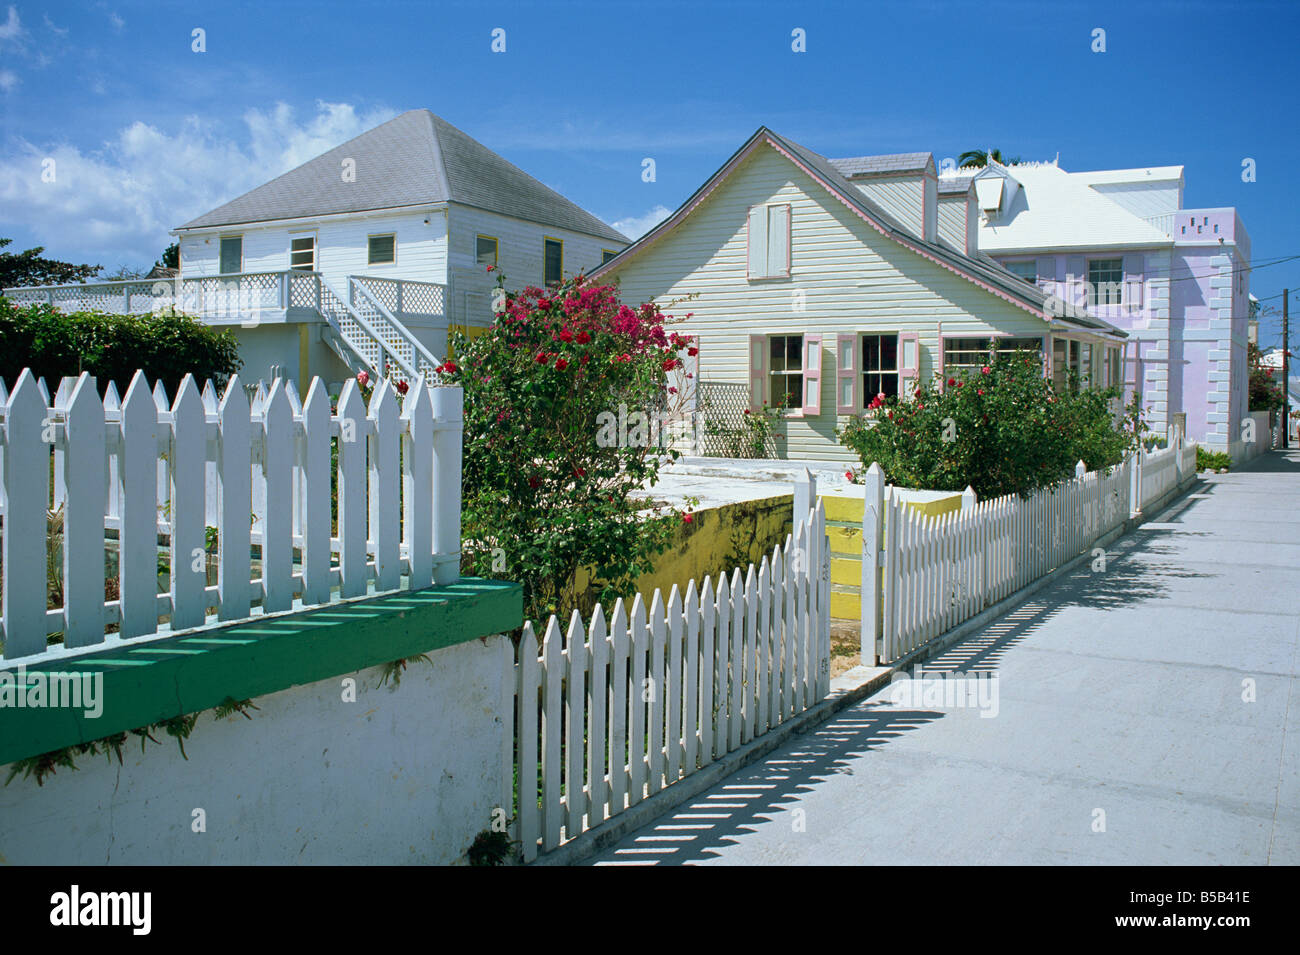 House rentals green turtle cay - Quiet Street Scene And Houses New Plymouth Green Turtle Cay Bahamas Caribbean J Lightfoot Firecrest Pictures